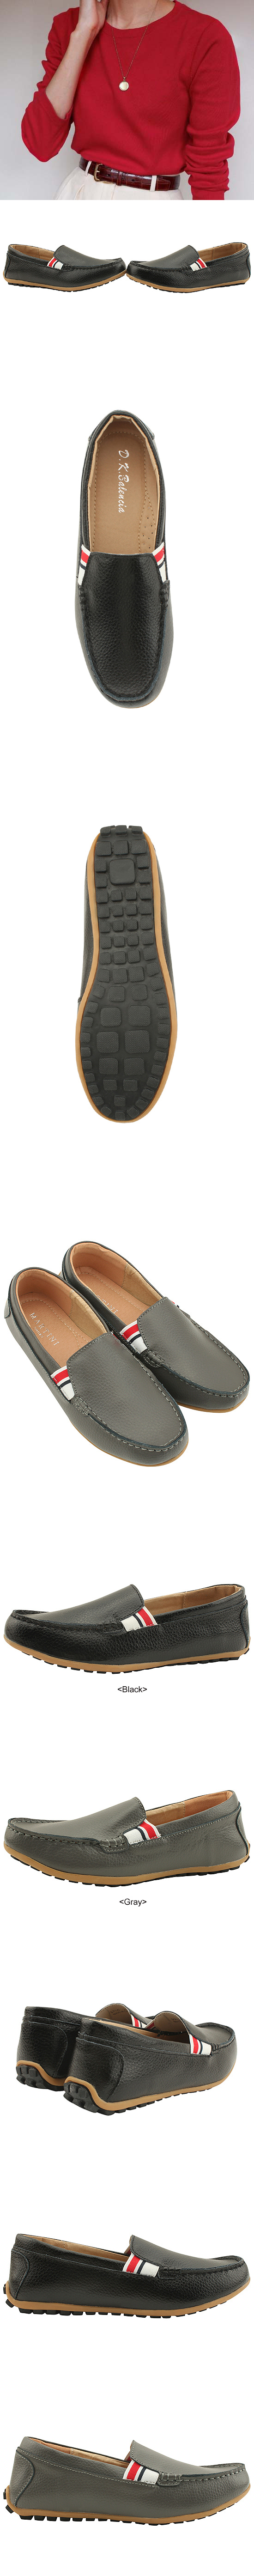 Cowhide Banding Driving Loafers Black